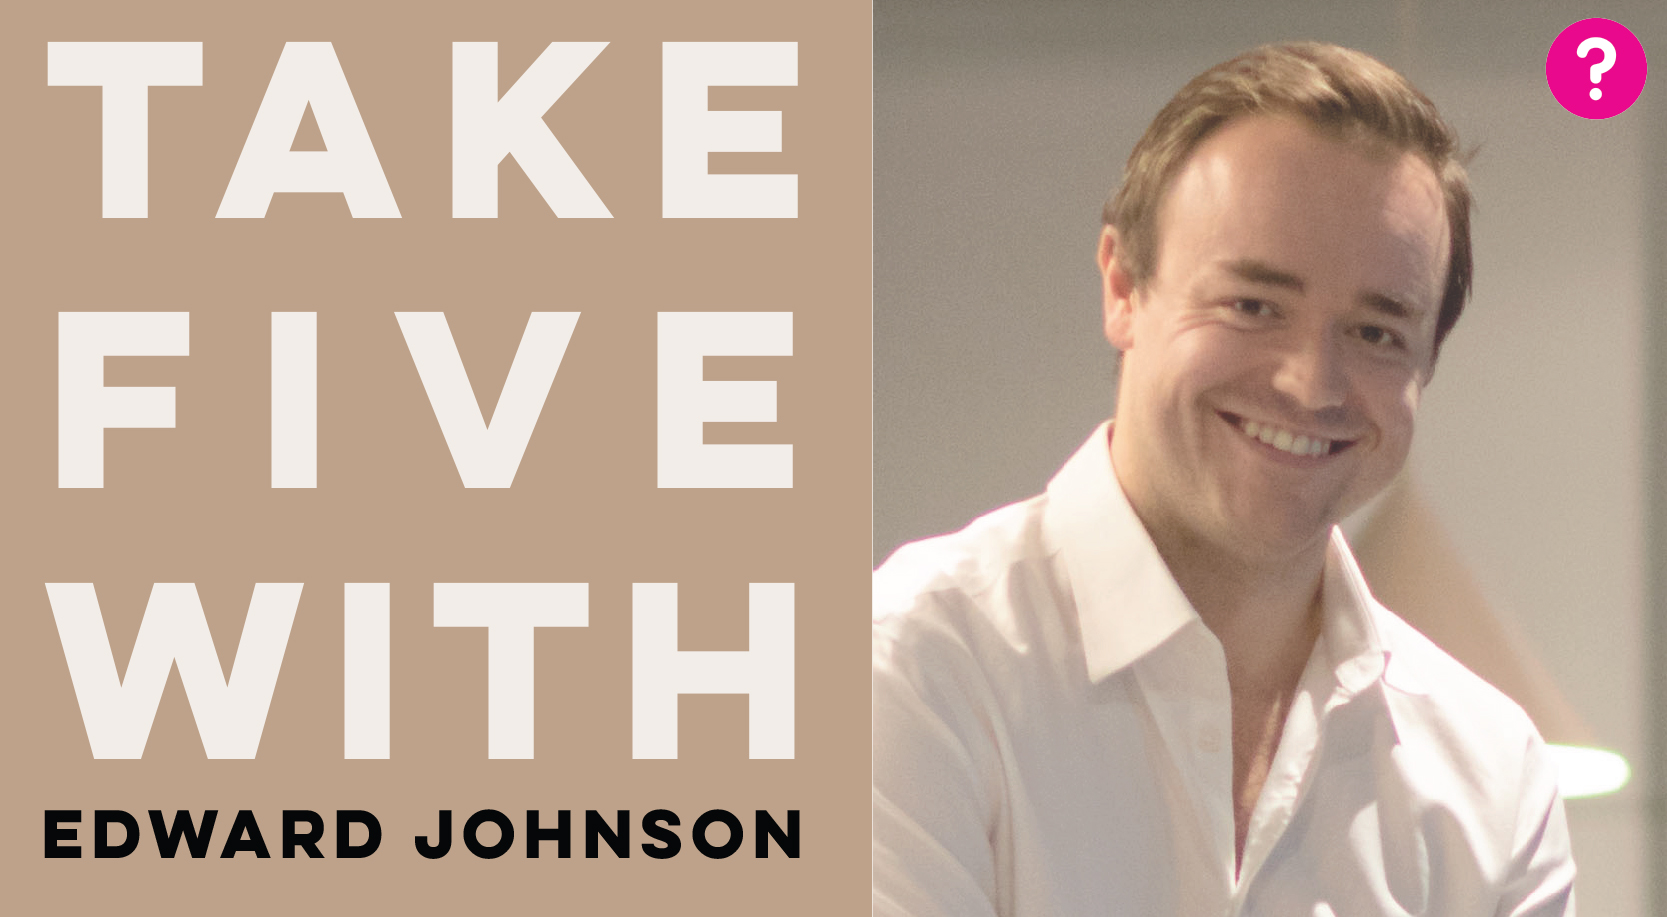 Take Five With Edward Johnson - pictured is a closeup of Ed smiling into the camera